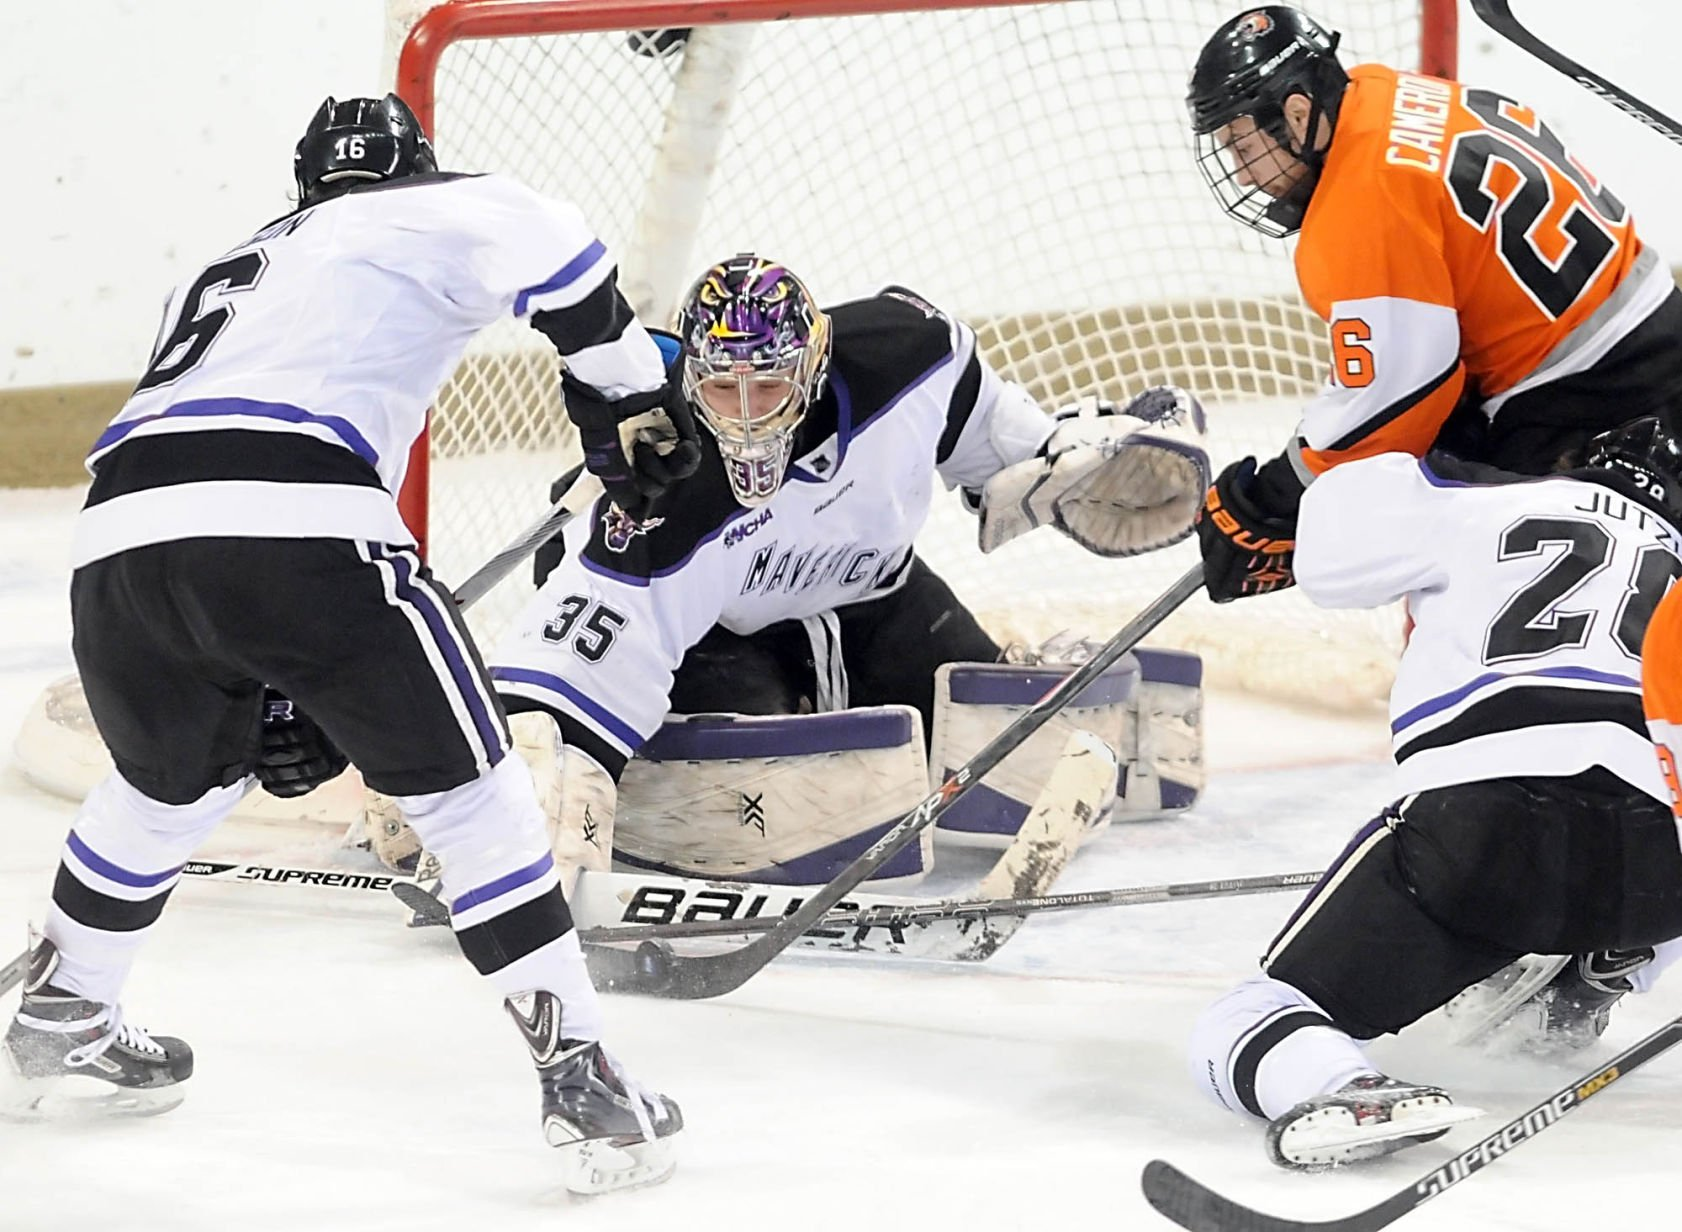 NCAA: RIT Coach - Upset But Not A Miracle